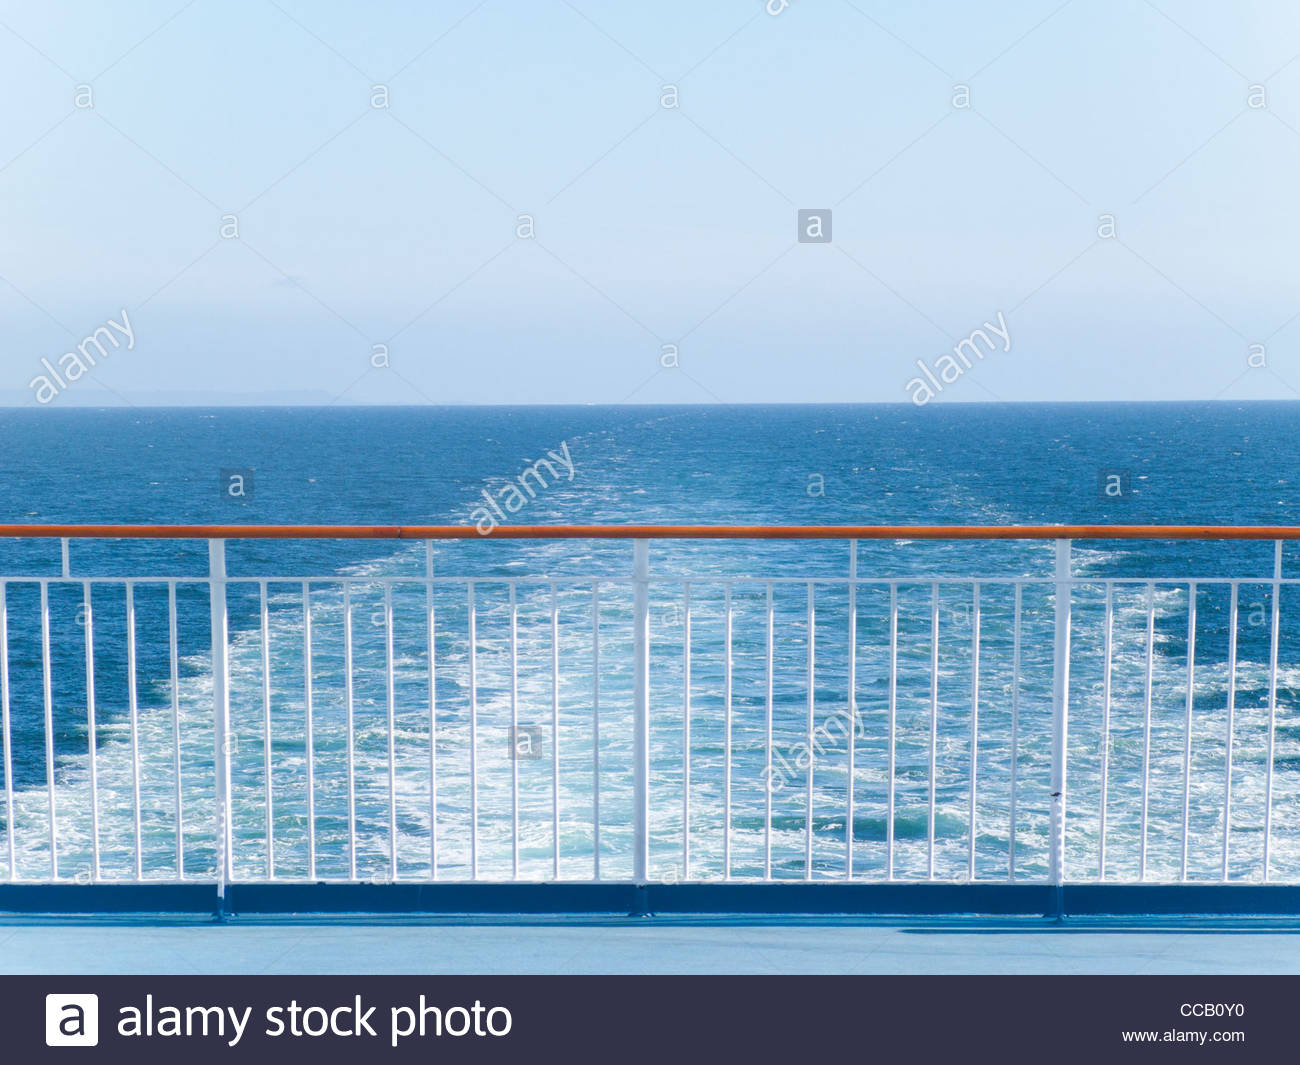 Railing of ship with ocean water in background - Stock Image